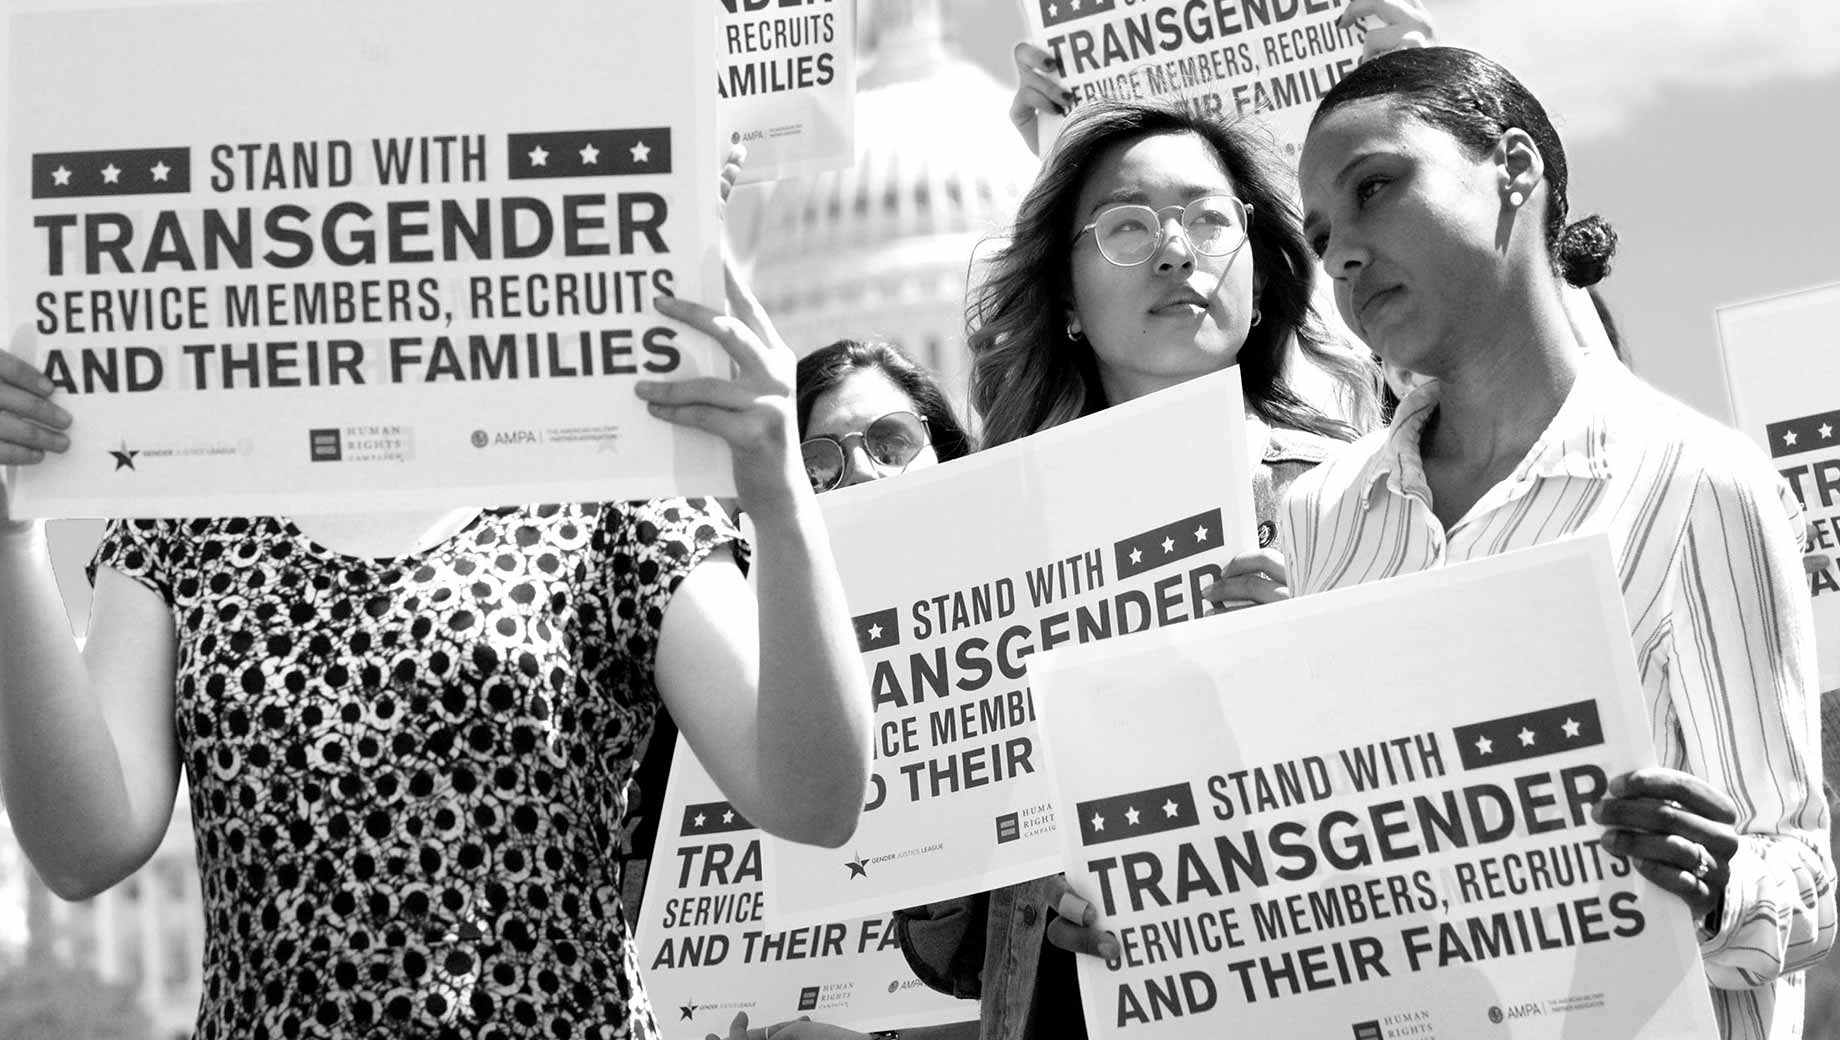 In U.S., 71% Support Transgender People Serving in Military